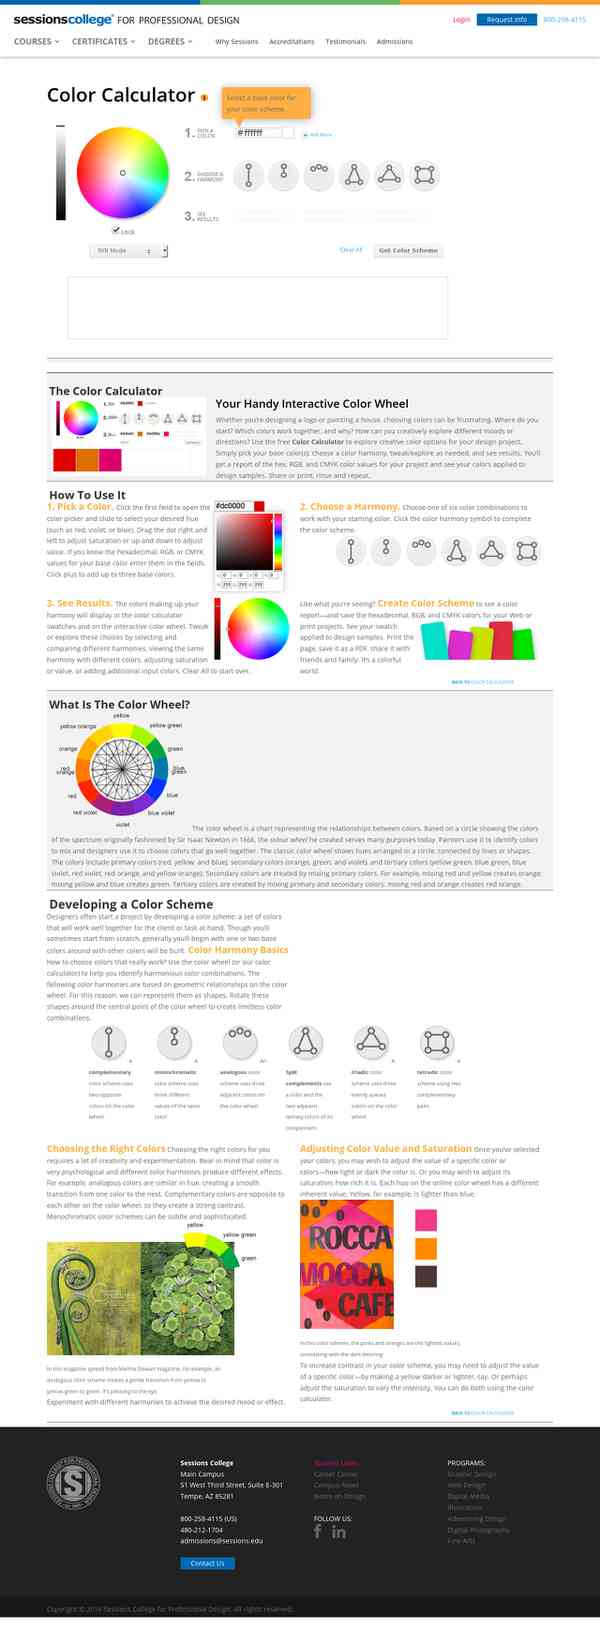 color wheel color calculator sessions college colour online